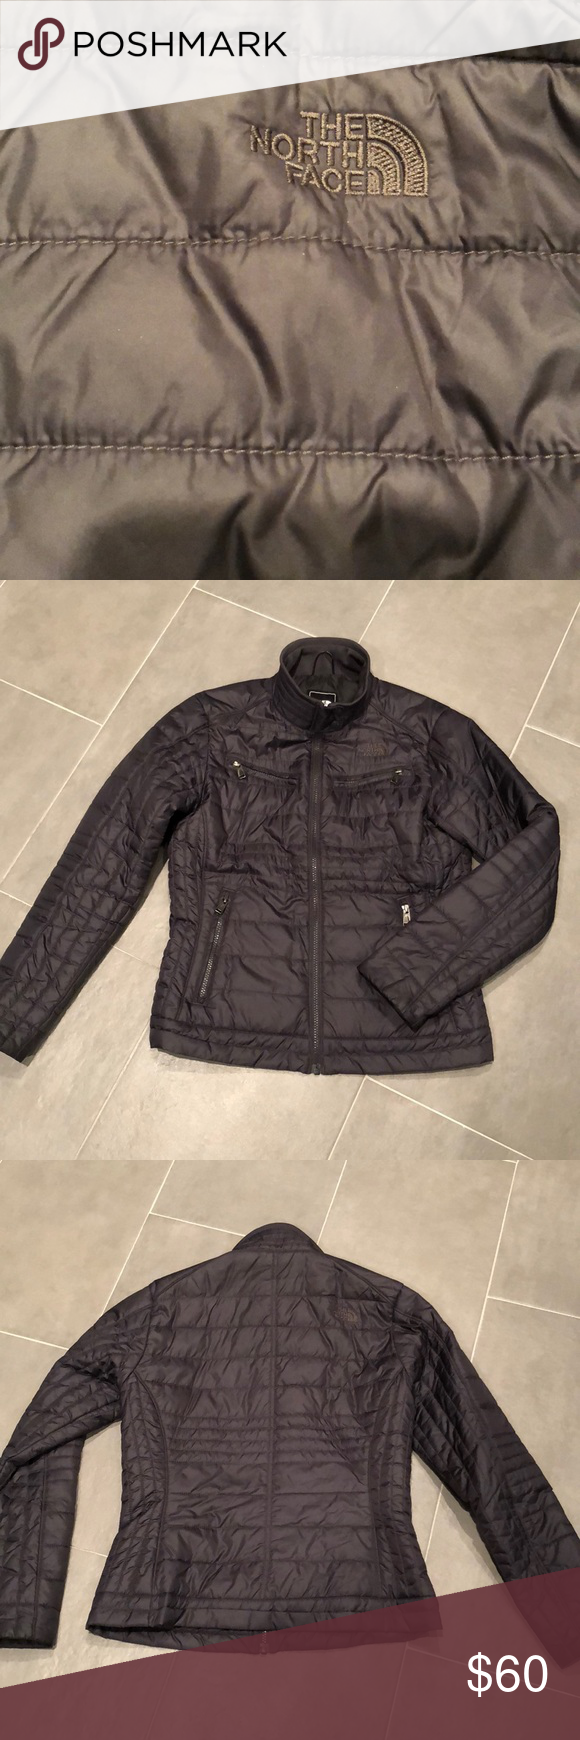 The North Face Jacket North Face Jacket Jackets The North Face [ 1740 x 580 Pixel ]